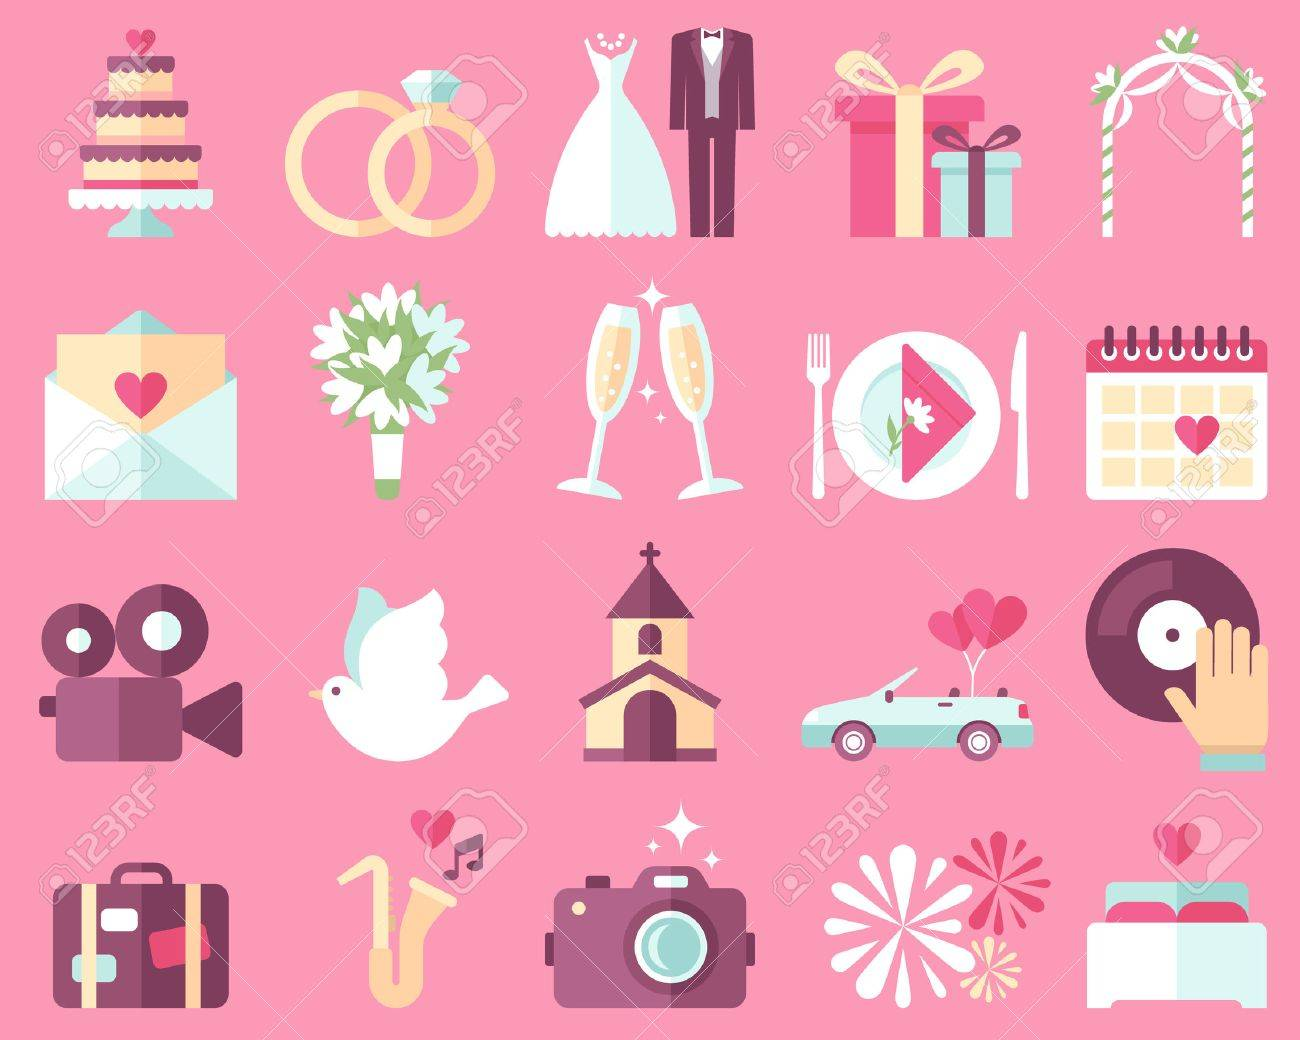 Big vector collection of wedding icons on pink background. Flat style. - 53774219